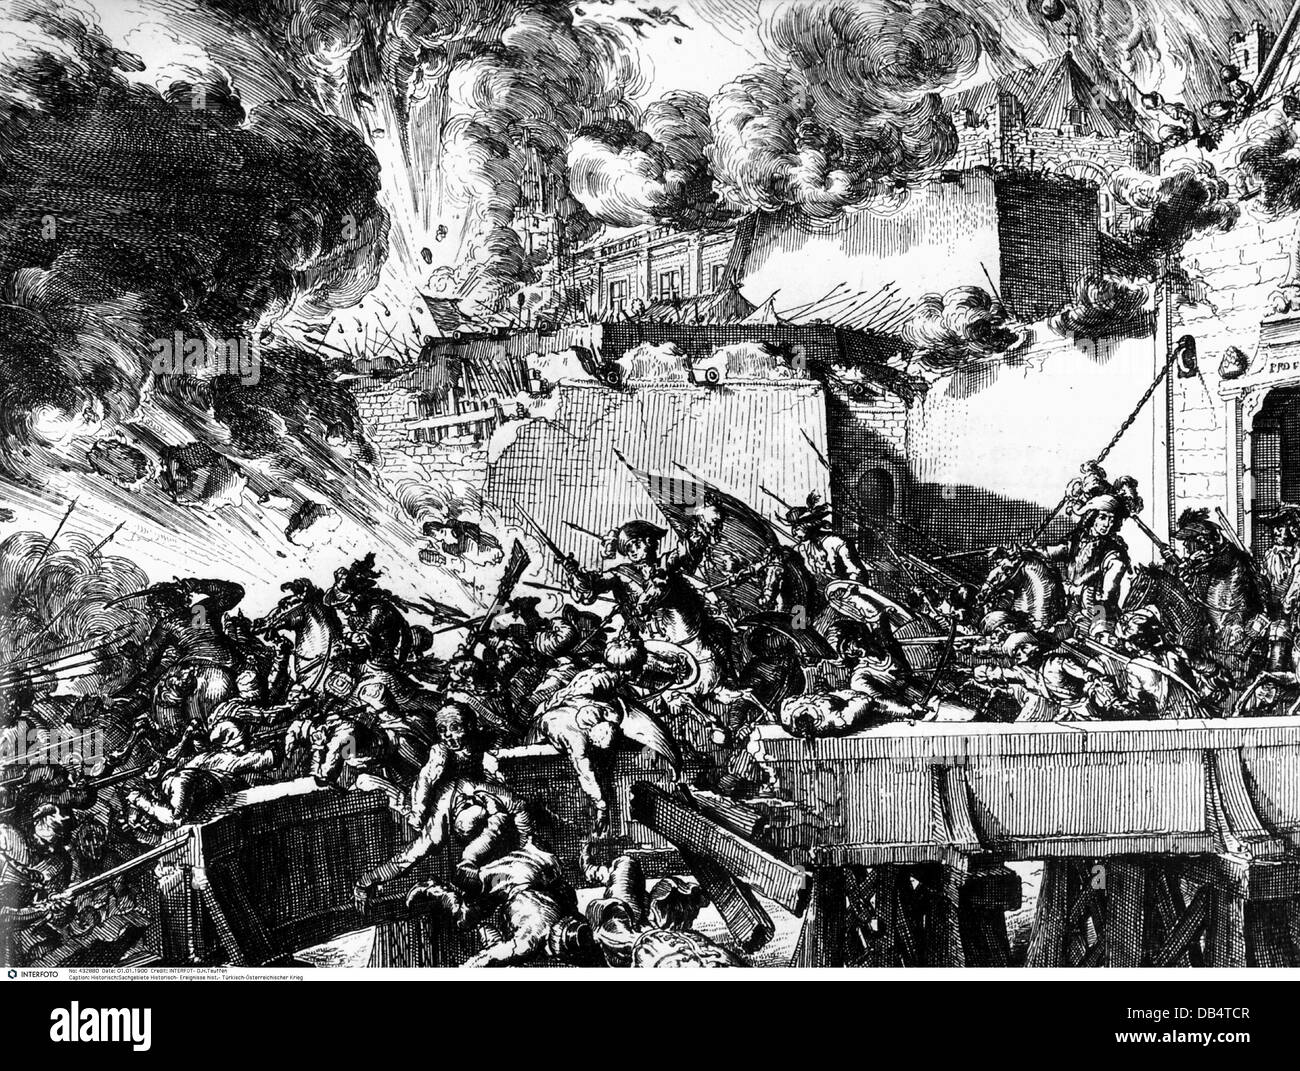 Ottoman-Habsburg War 1683 - 1689, Siege of Vienna 1683, relief of the occupying forces, contemporary copper engraving, - Stock Image